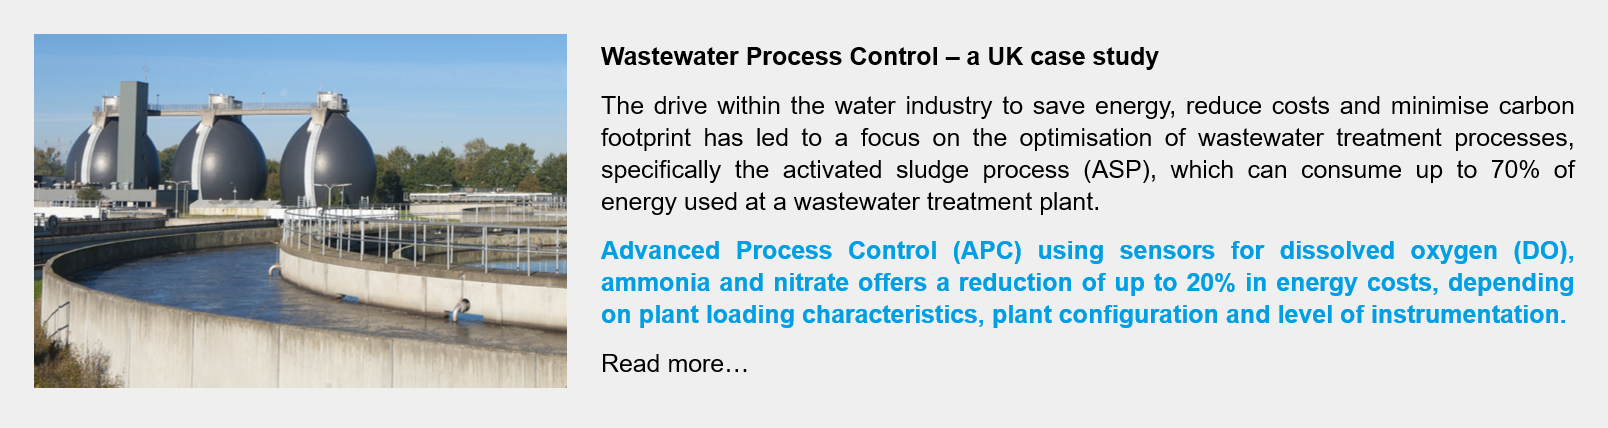 Download Showcase 008 - wastewater process control